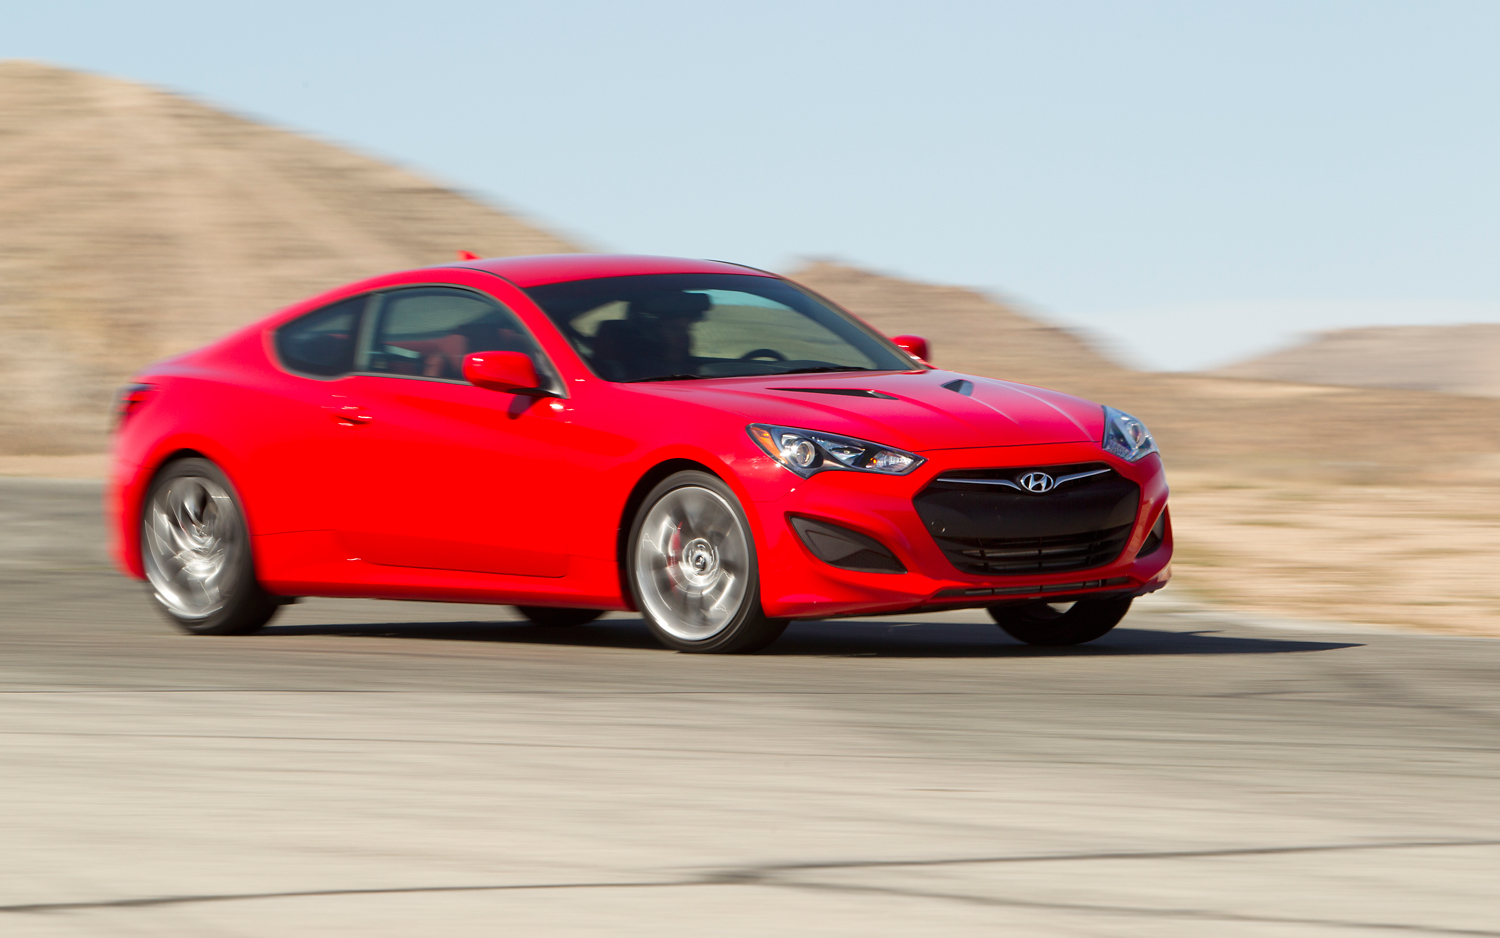 Superb 2013 Hyundai Genesis Coupe 2.0T R Spec First Test